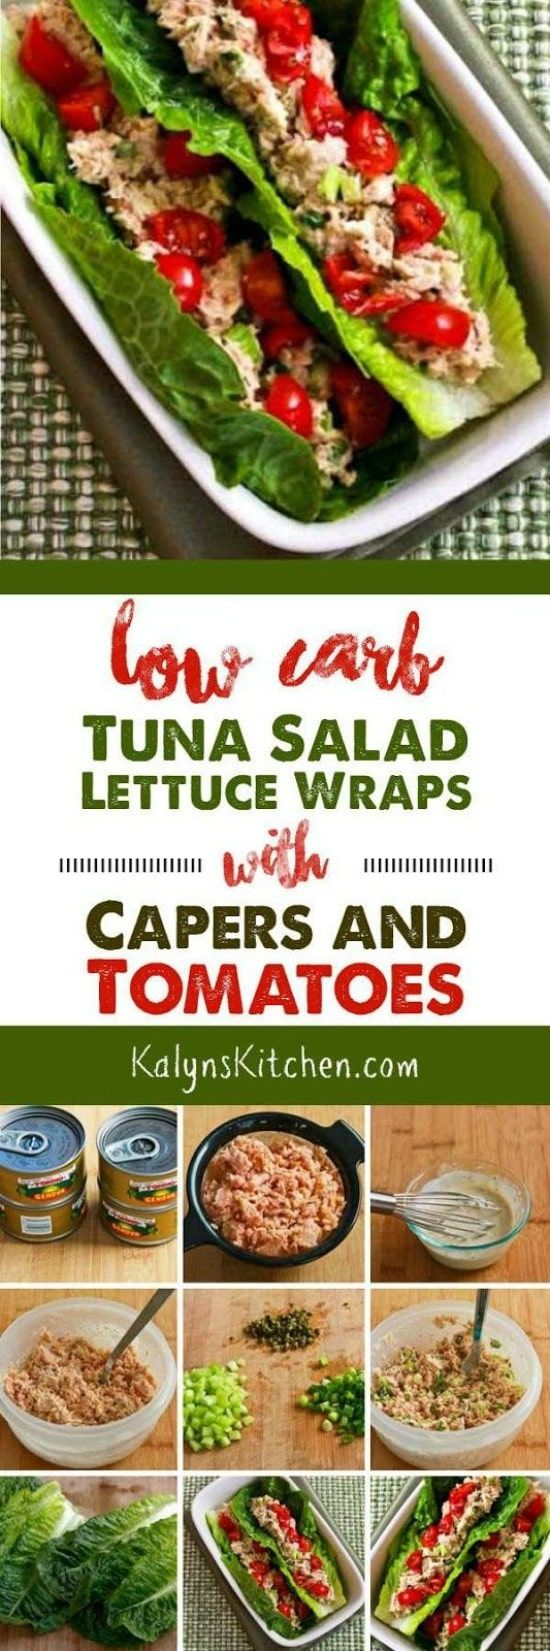 Low-Carb Tuna Salad Lettuce Wraps with Capers and Tomatoes